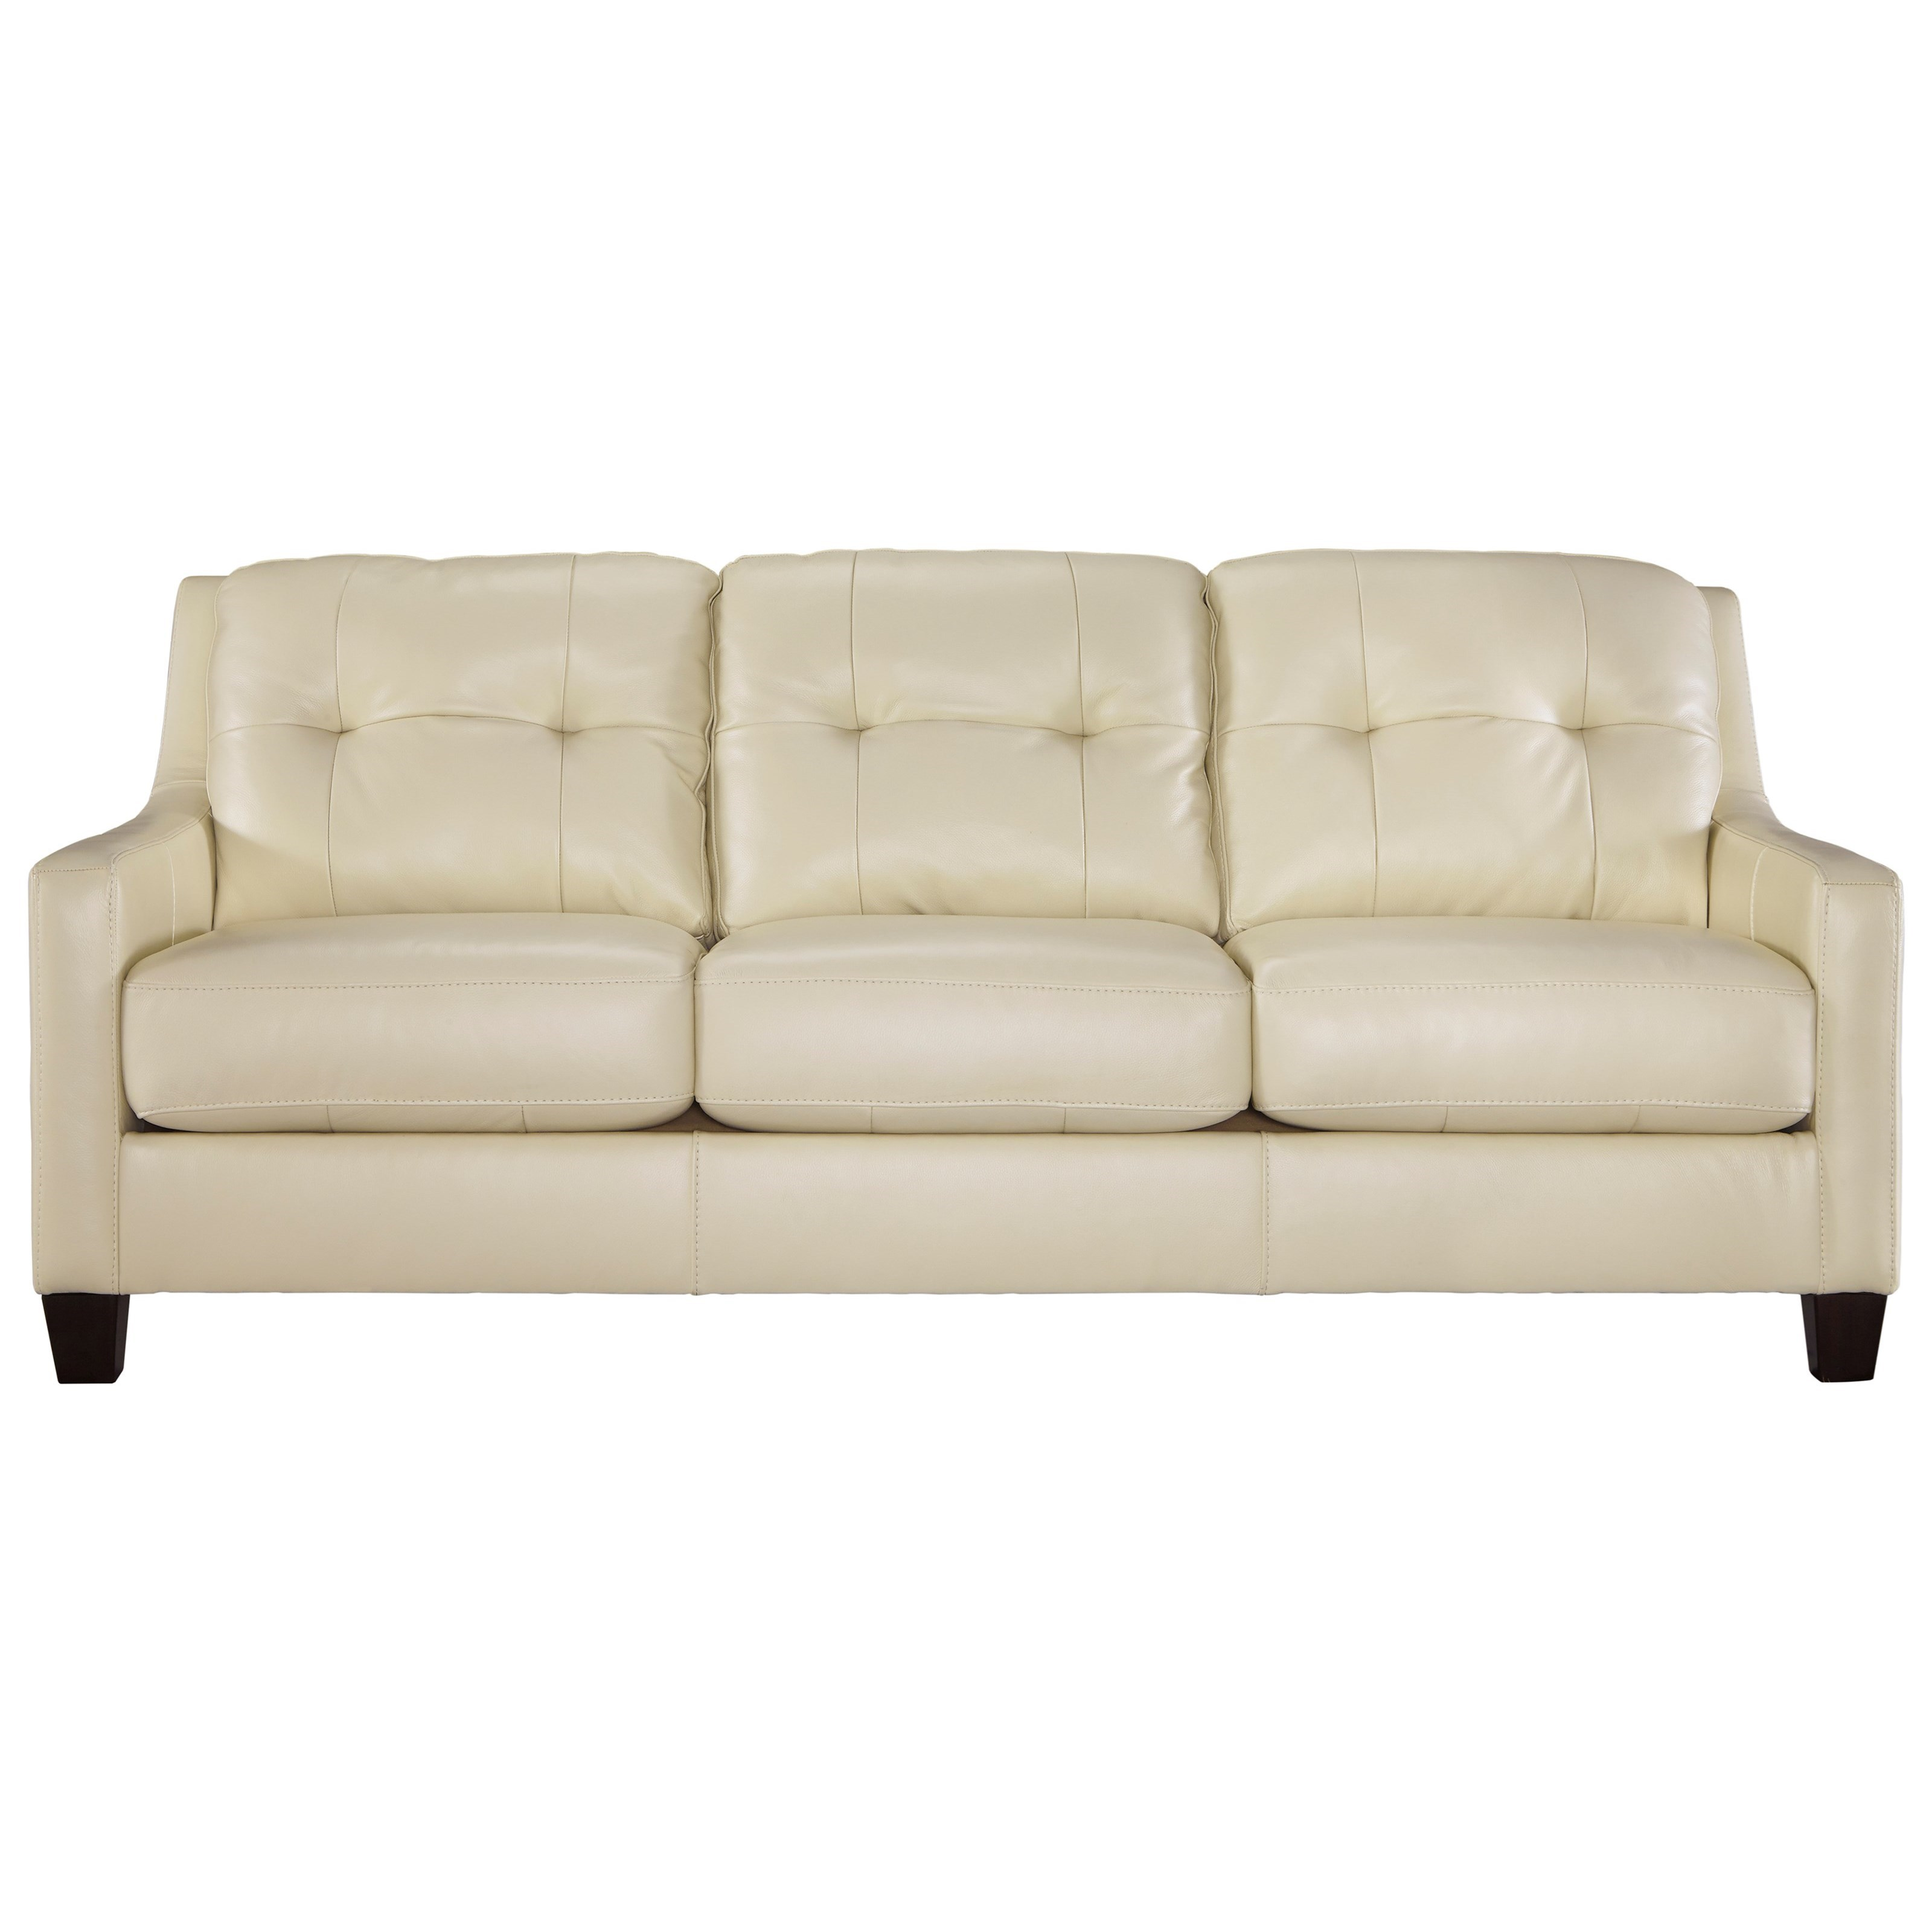 Signature Design by Ashley O'Kean Queen Sofa Sleeper - Item Number: 5910239